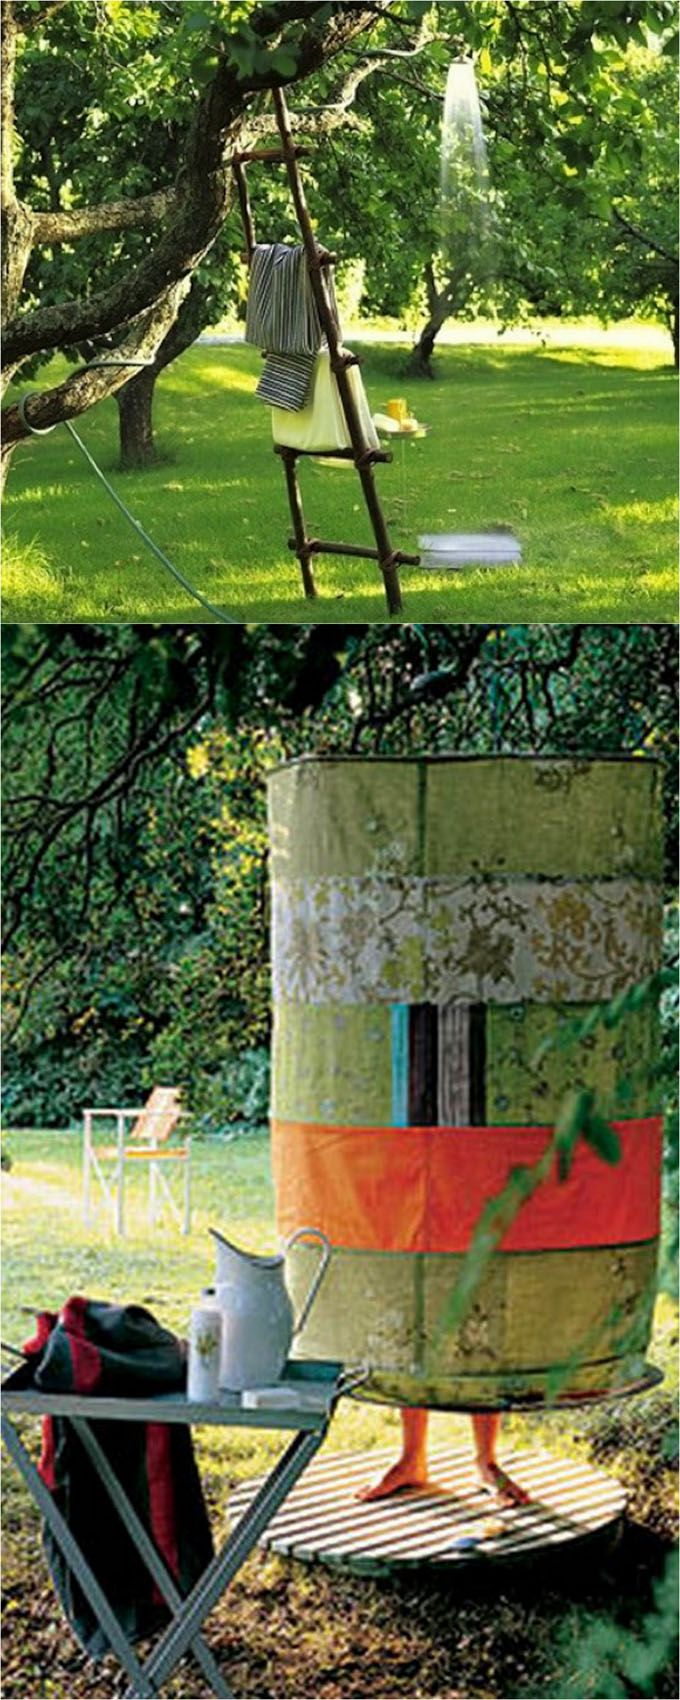 32 easy DIY outdoor showers: how to build enclosures with simple materials, best outdoor shower fixtures, creative designs and more! - apieceofrainbow.com